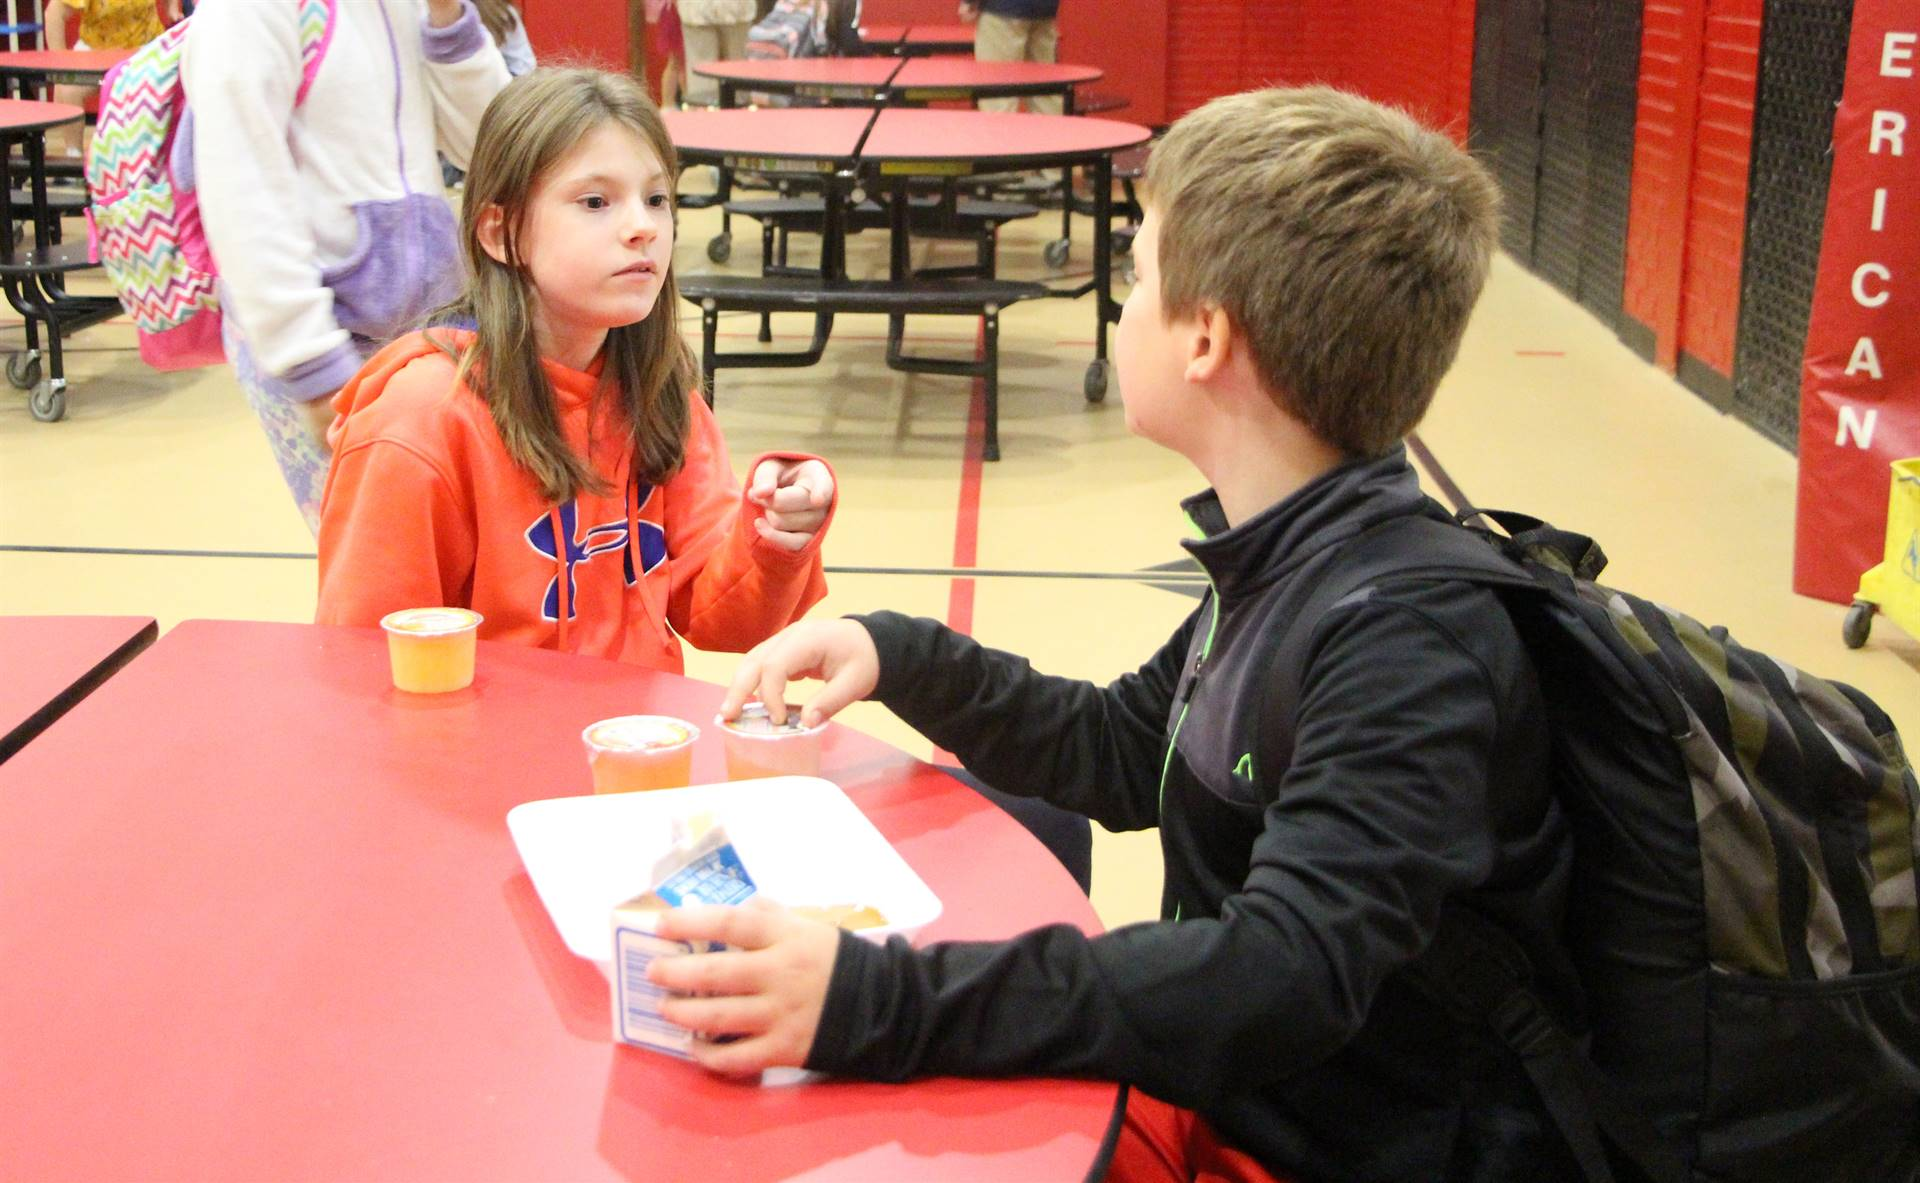 Girl and boy talking in cafeteria